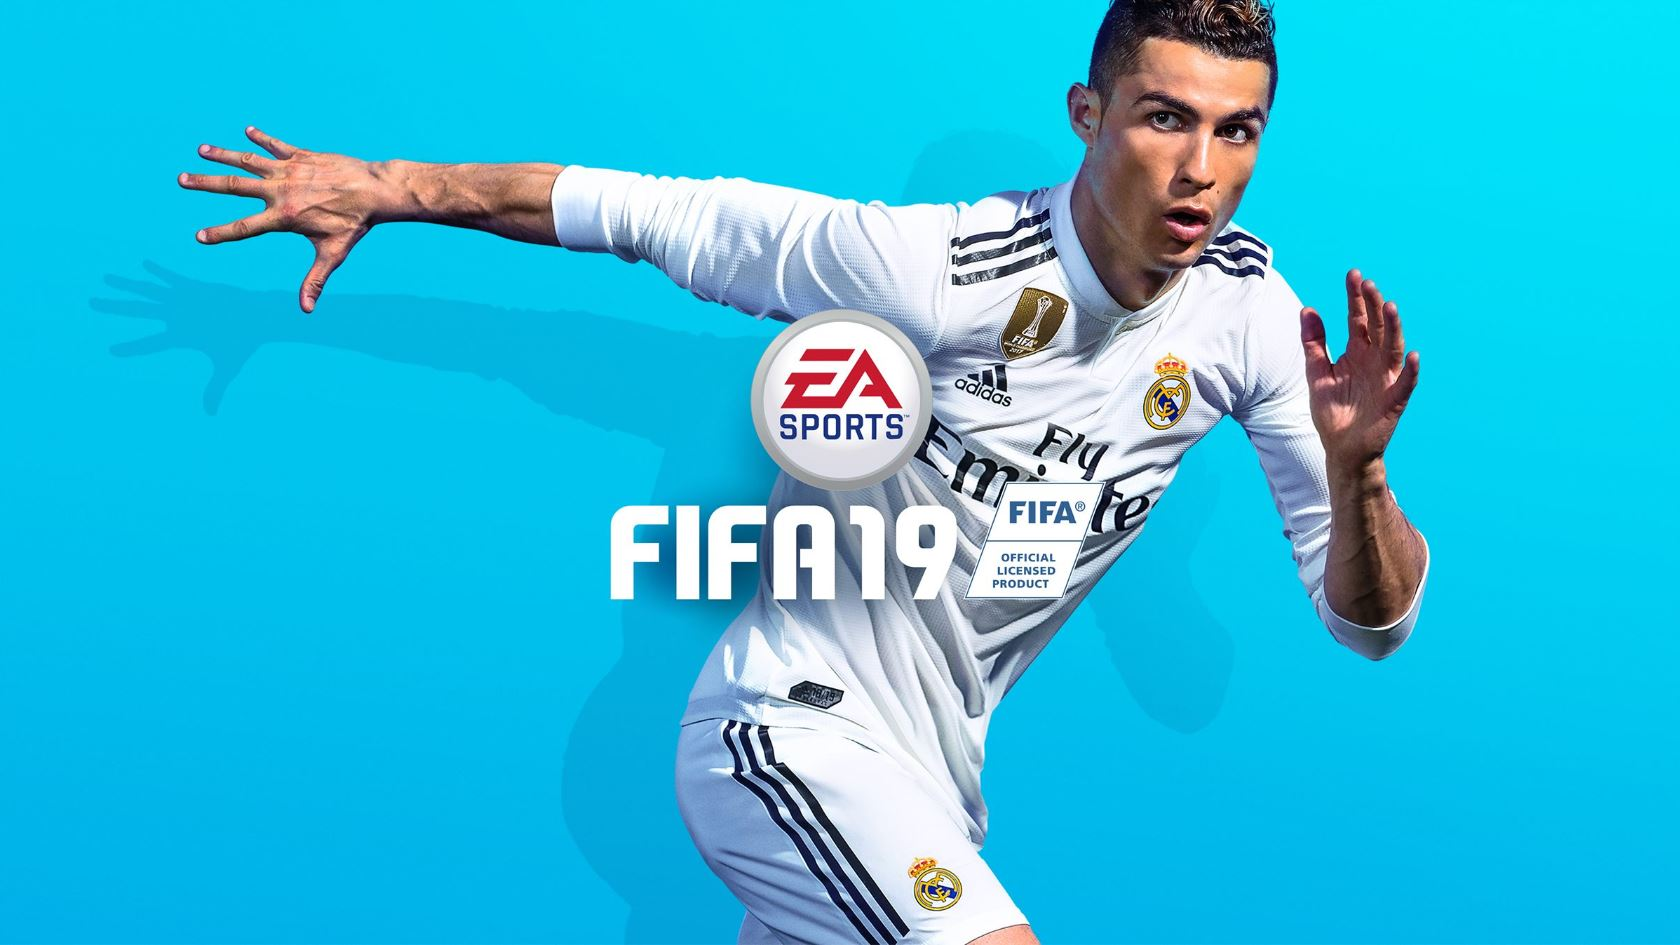 Photo of FIFA 19 Overcomes Spider-Man on the UK Video Games Chart